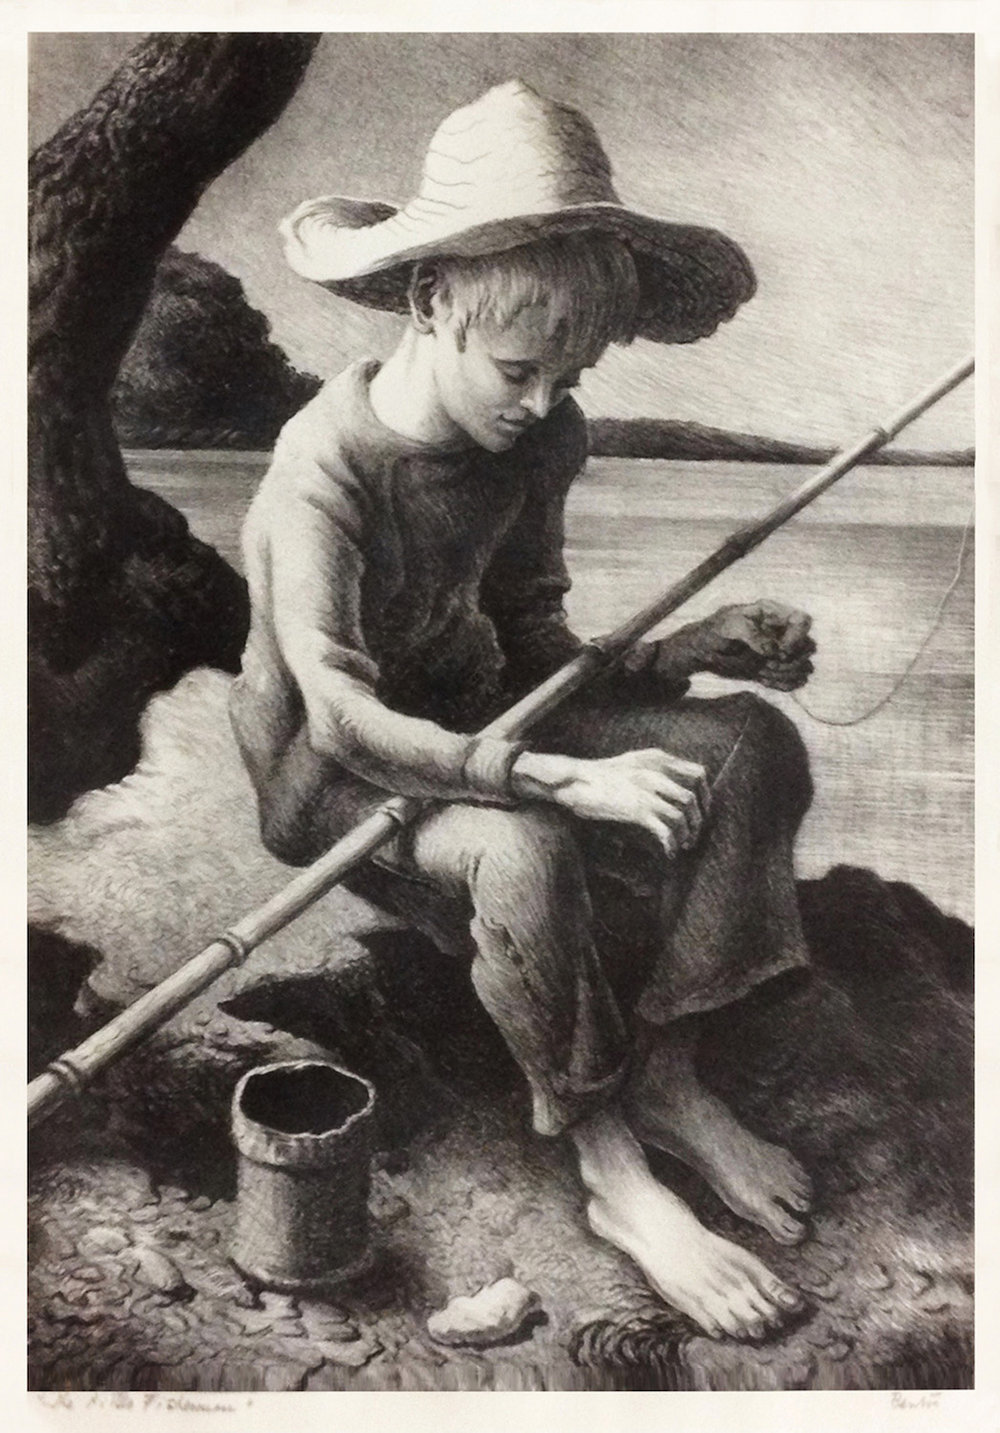 The Little Fisherman, 14 x 10, lithograph